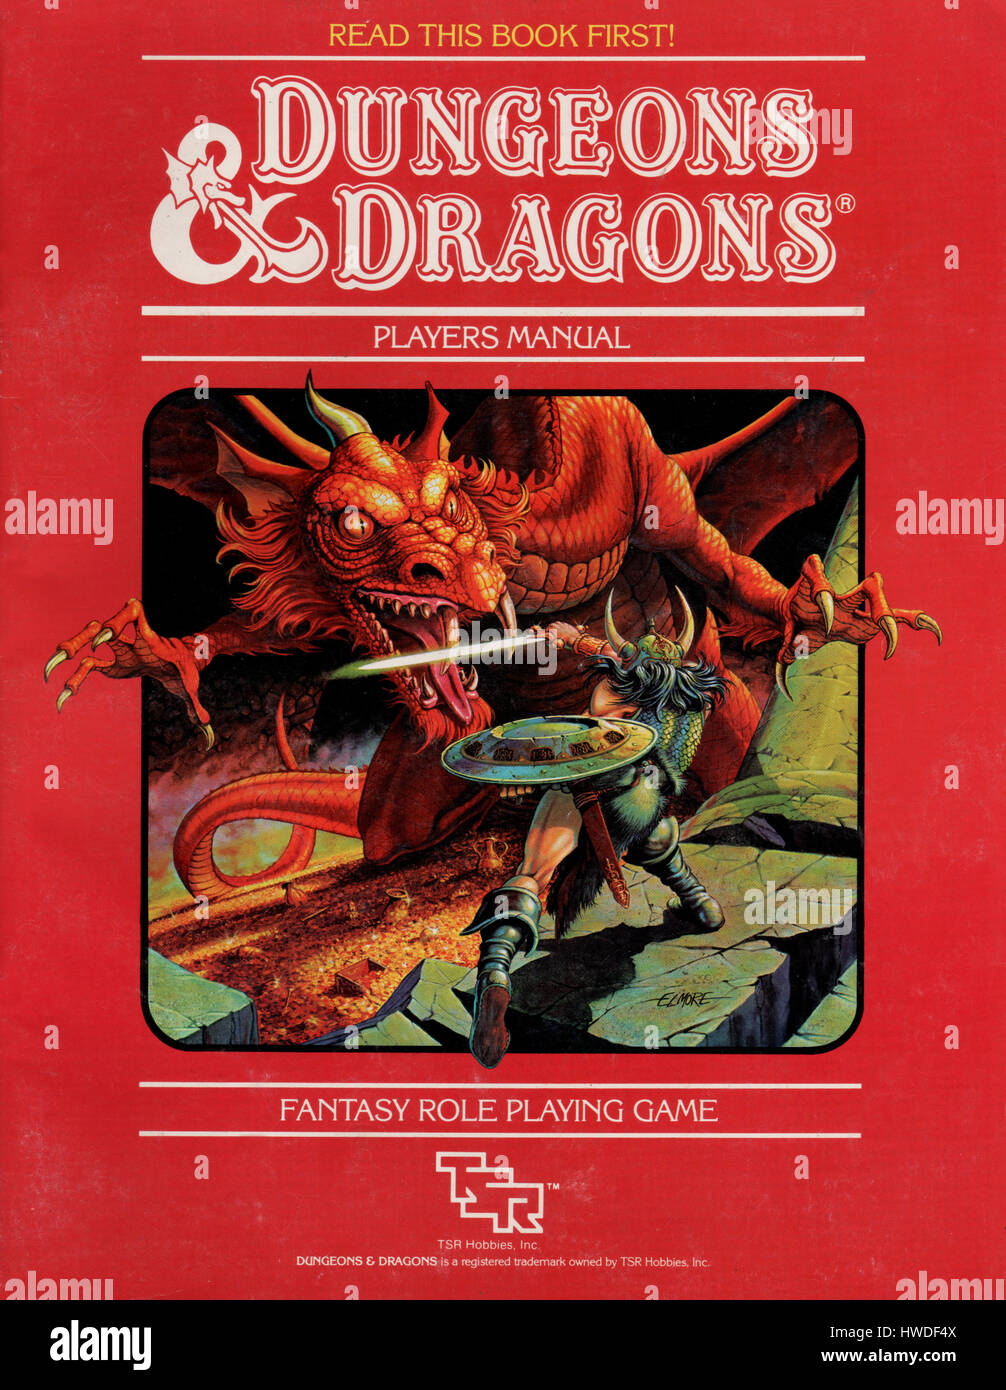 dungeons and dragons dungeon players manual book published as part